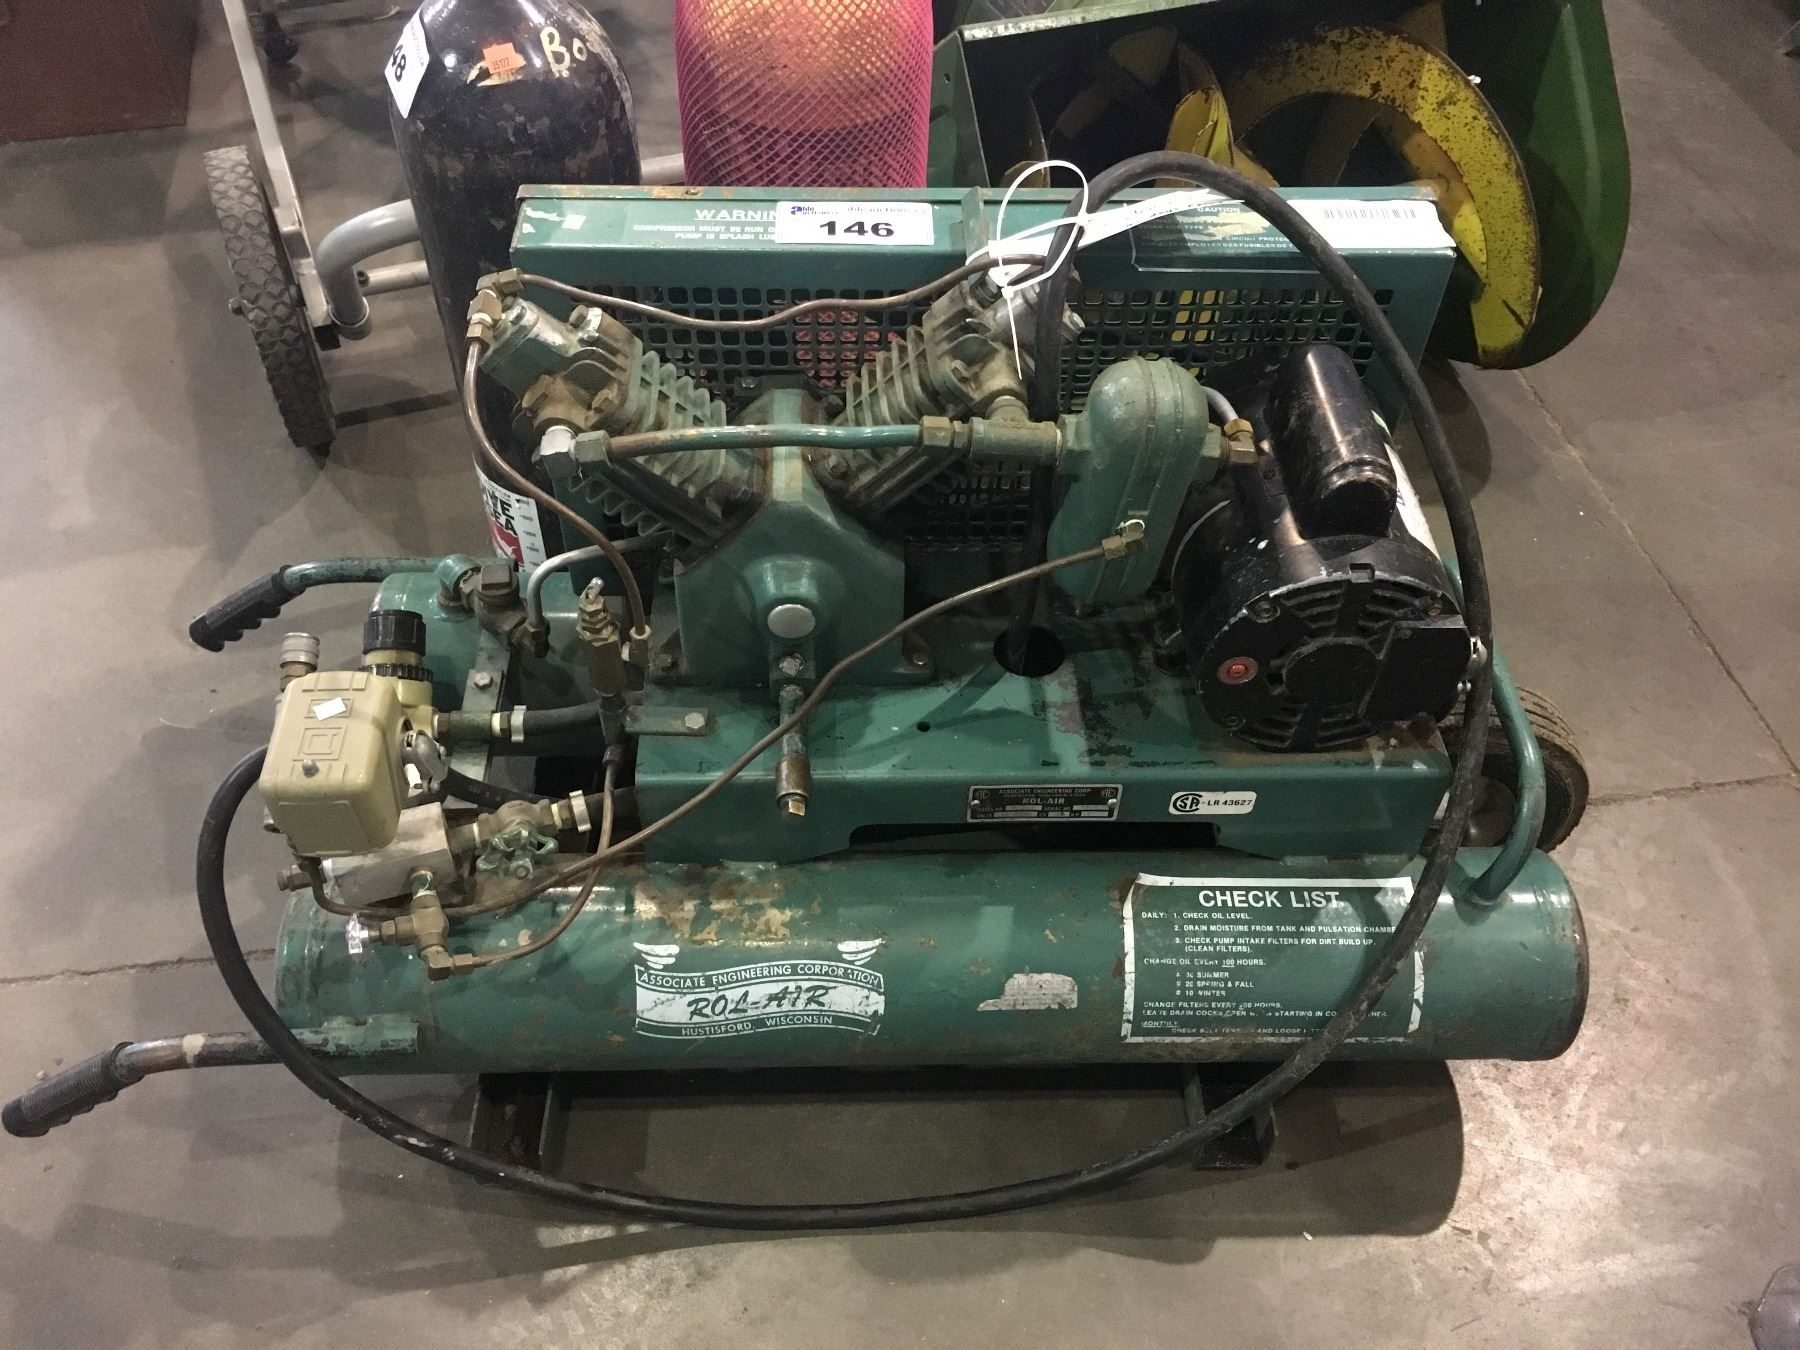 ROL AIR AIR COMPRESSOR MODEL#V2273